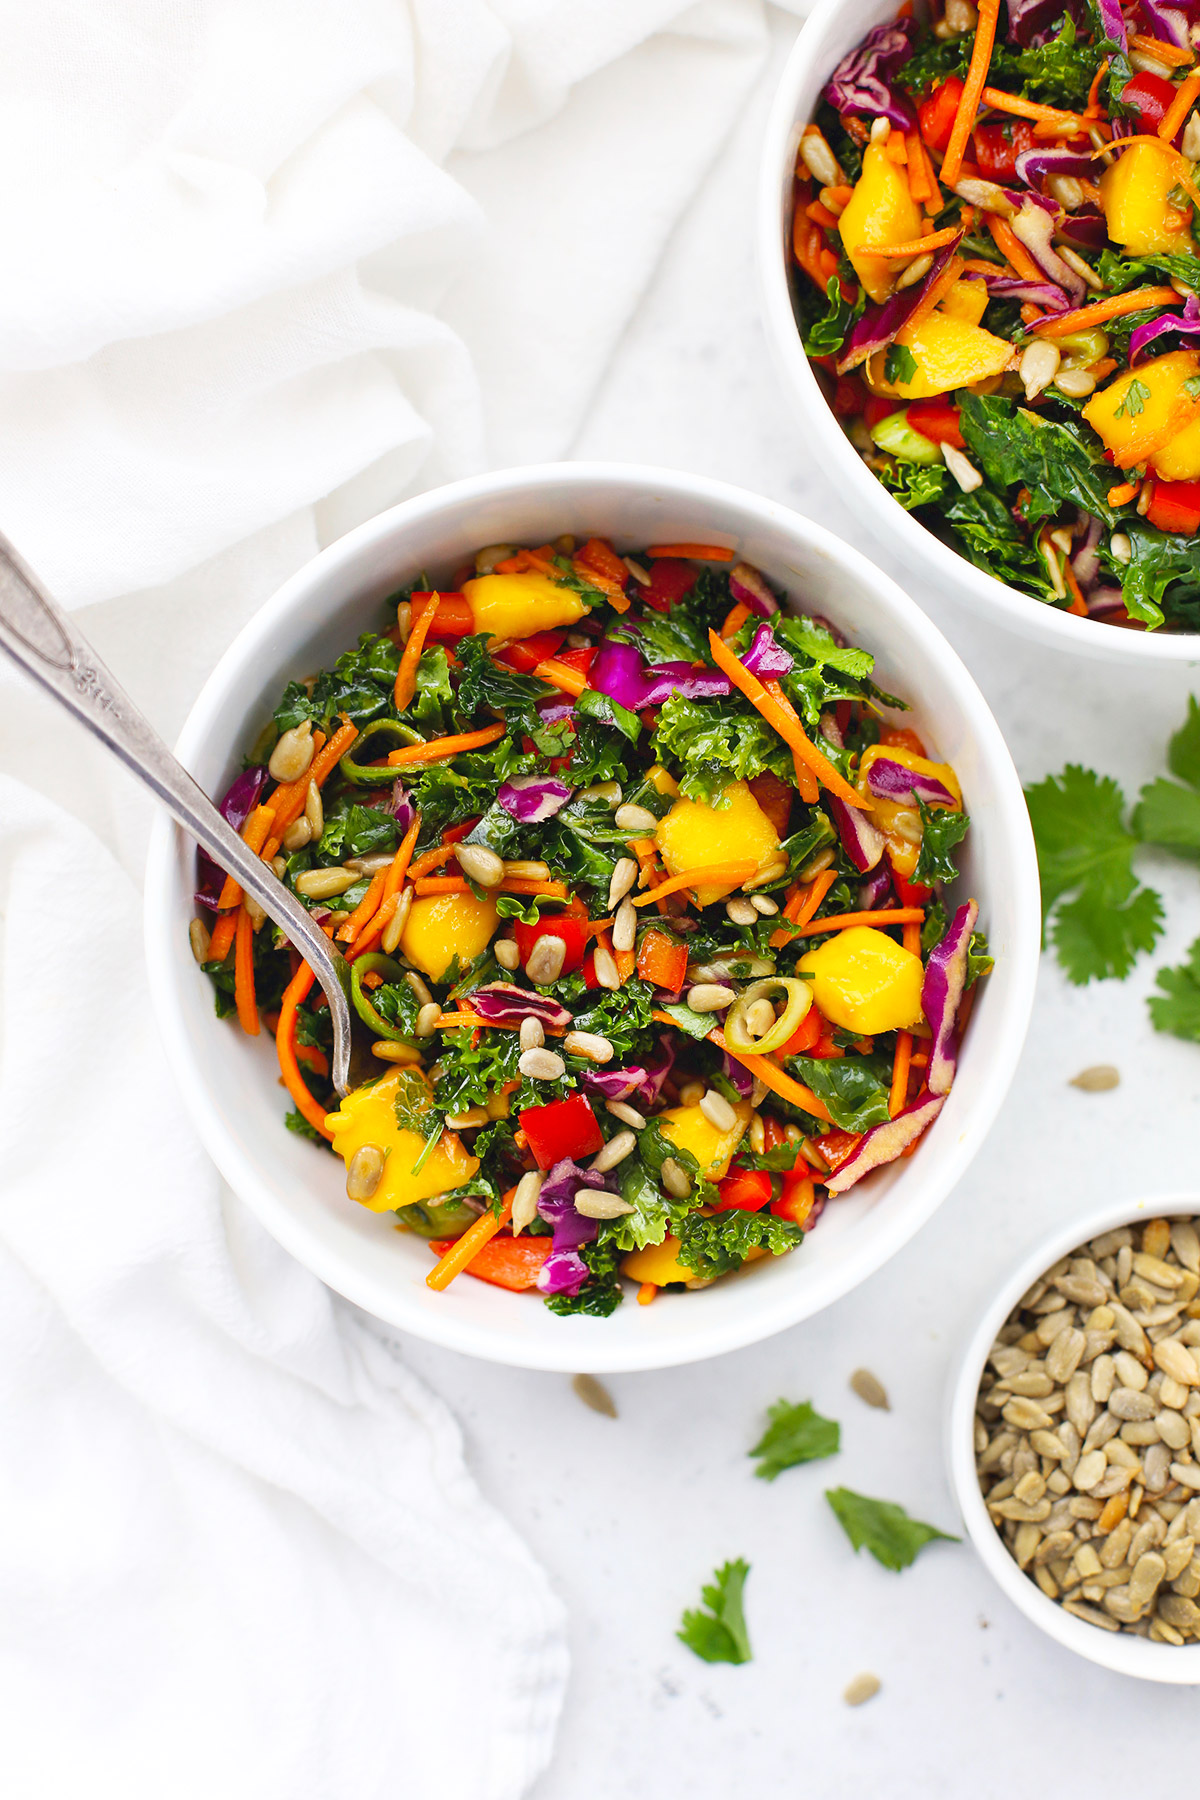 Two bowls of Asian Kale Crunch Salad in white bowls on a white background